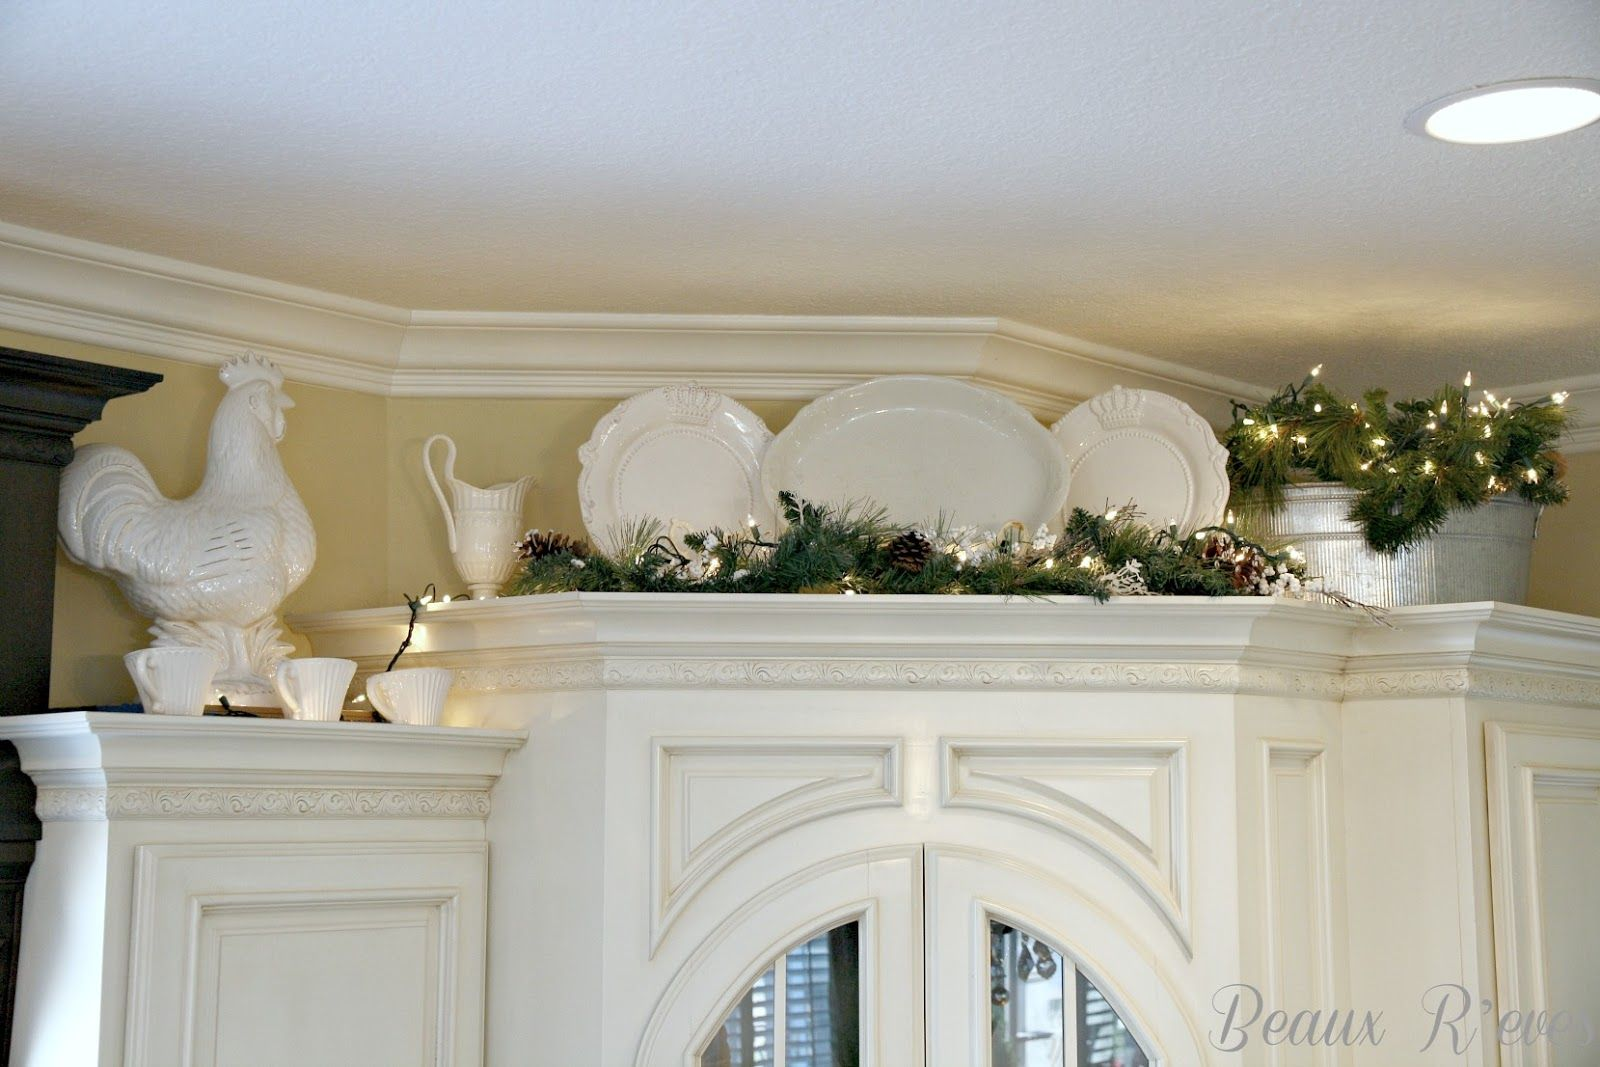 Decorating Top Of Kitchen Cabinets Beaux R Eves It Feels Like Winter Decora Above Decor